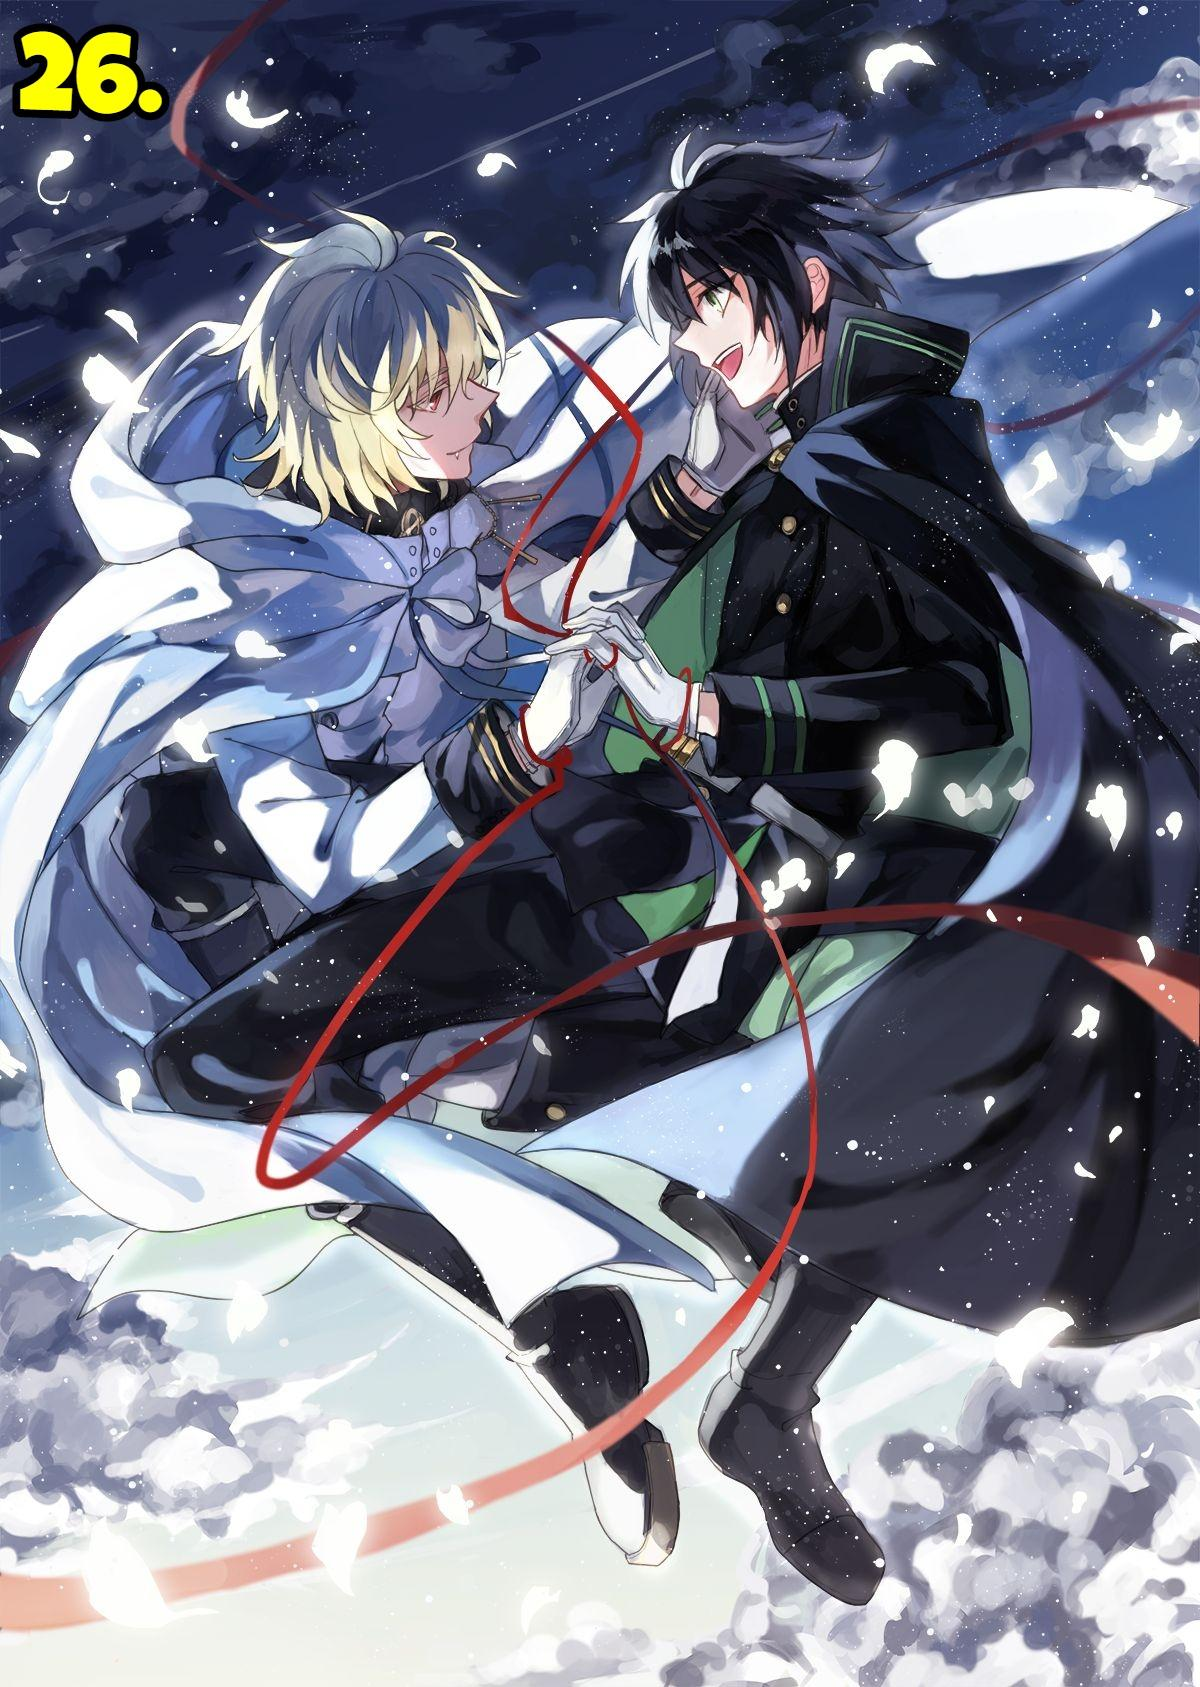 Owari No Seraph (Seraph Of The End)